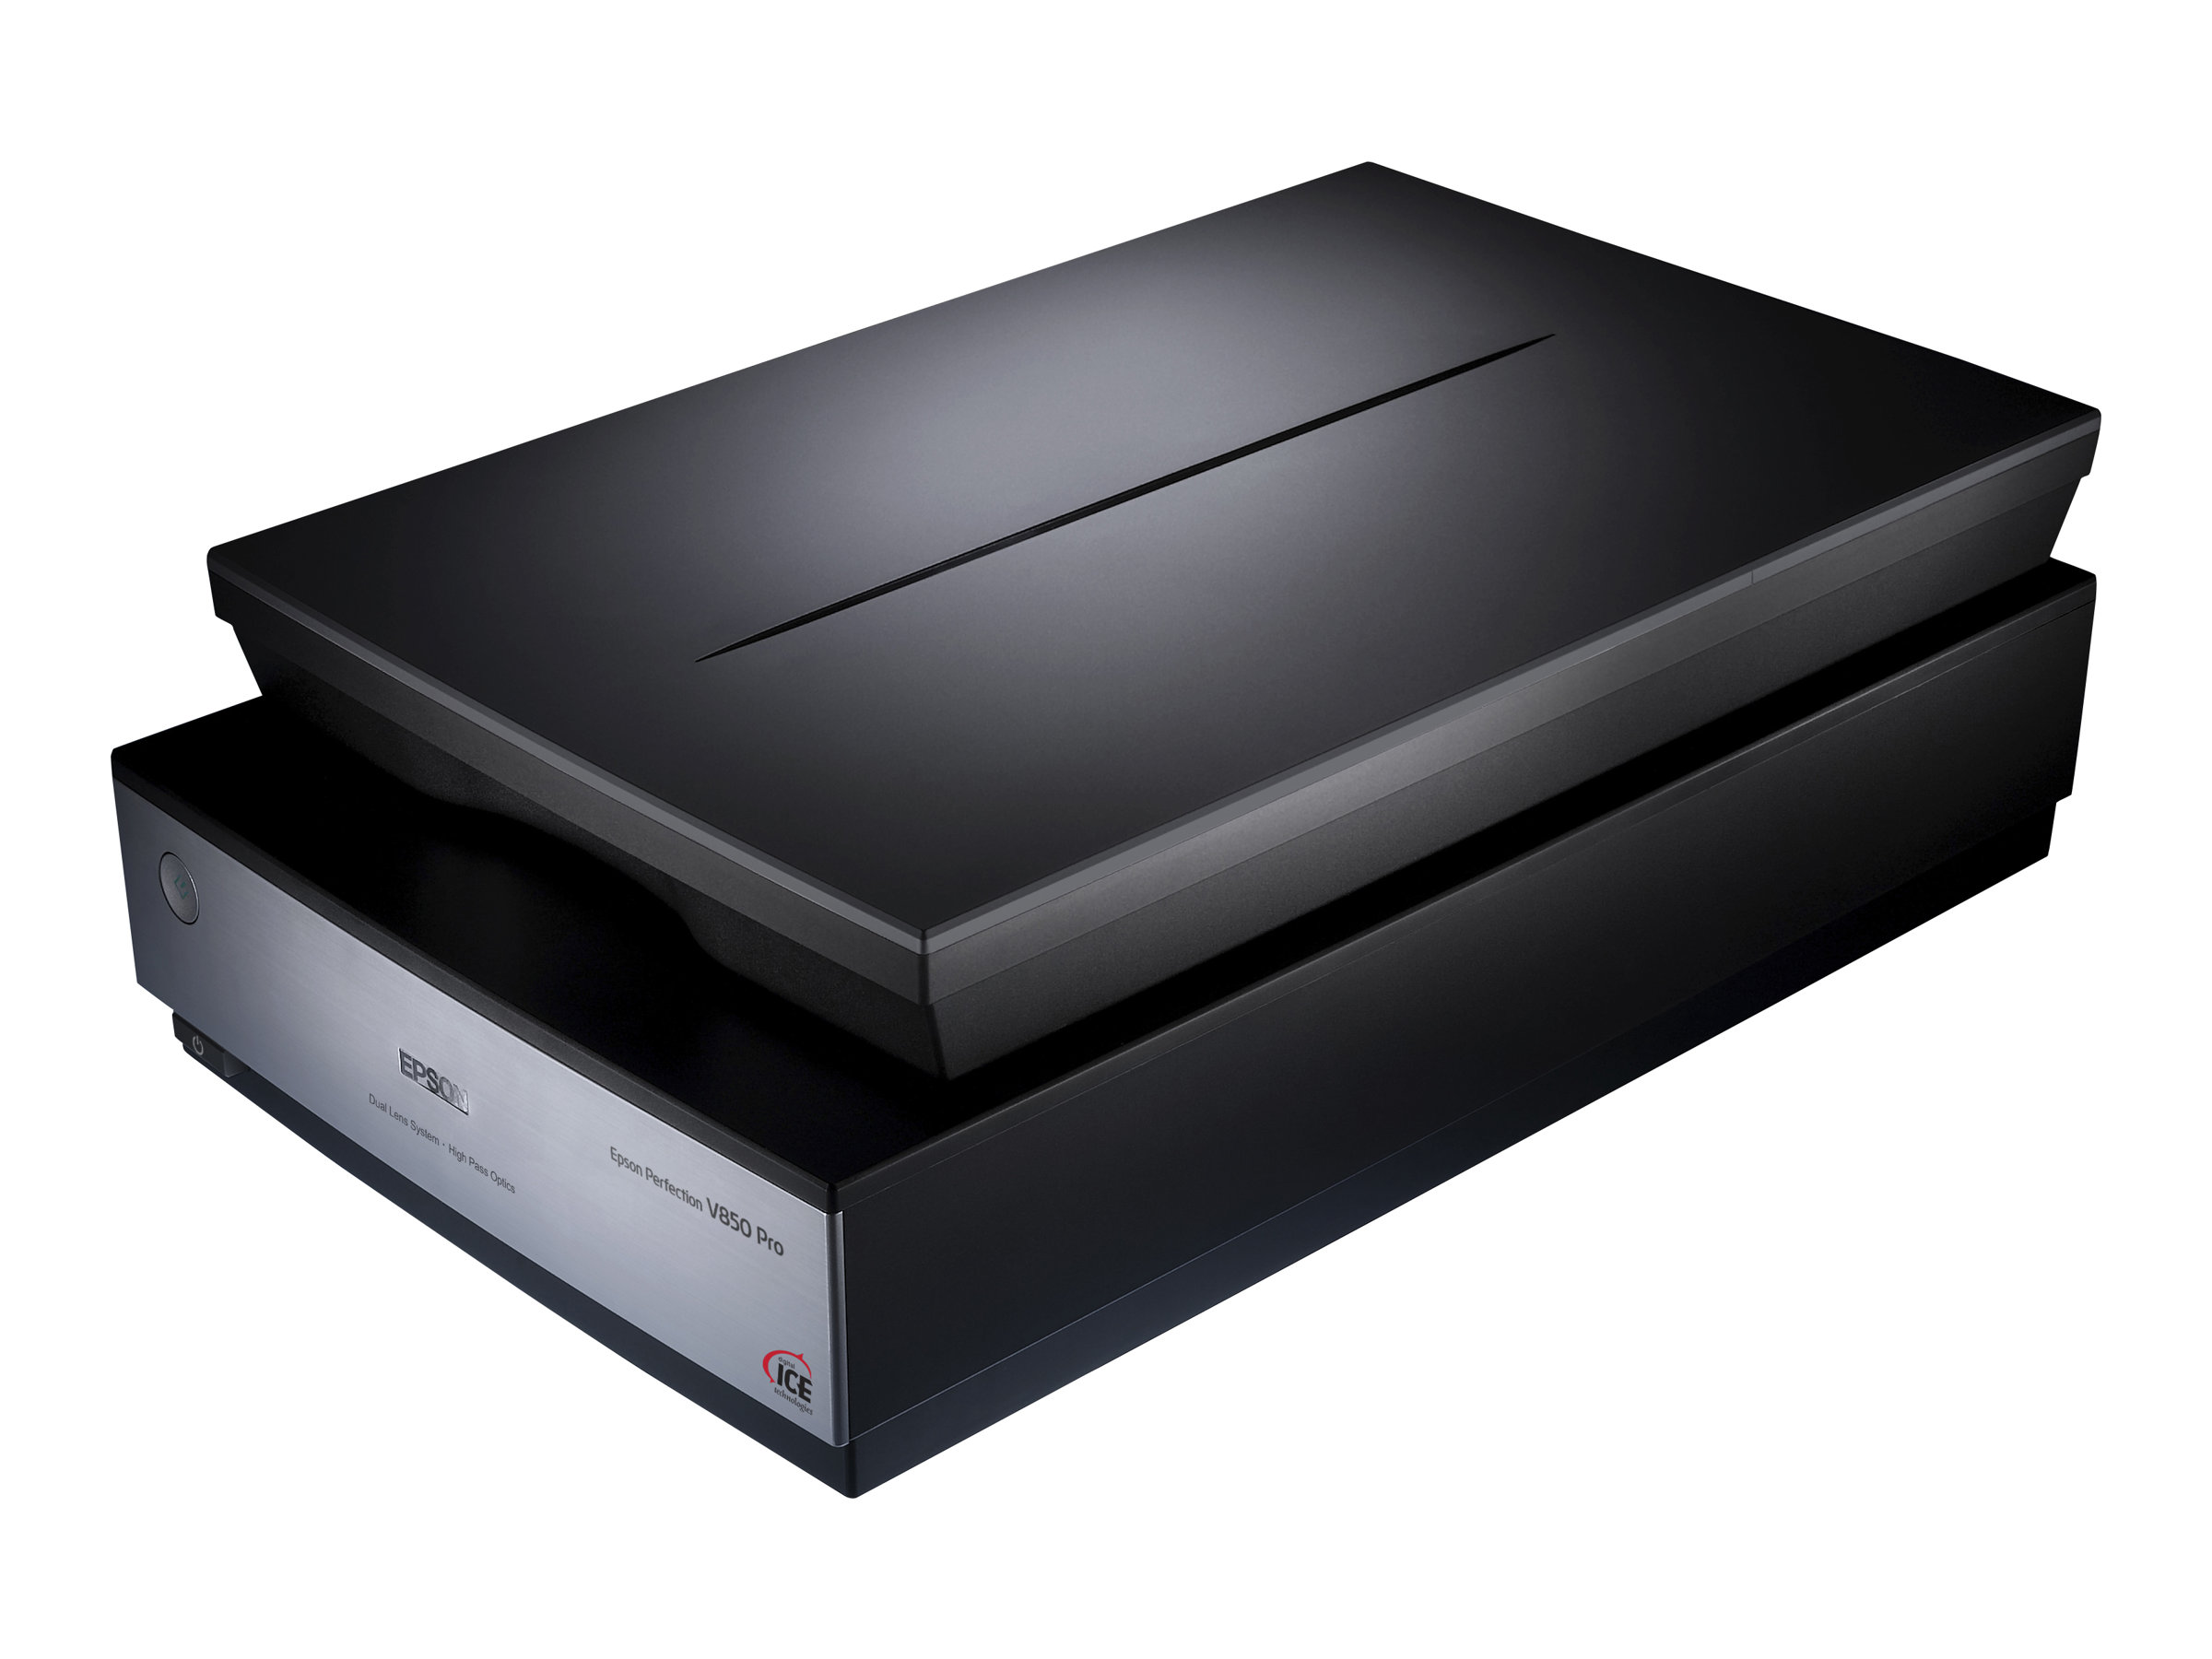 Epson Perfection V850 Pro - Flachbettscanner